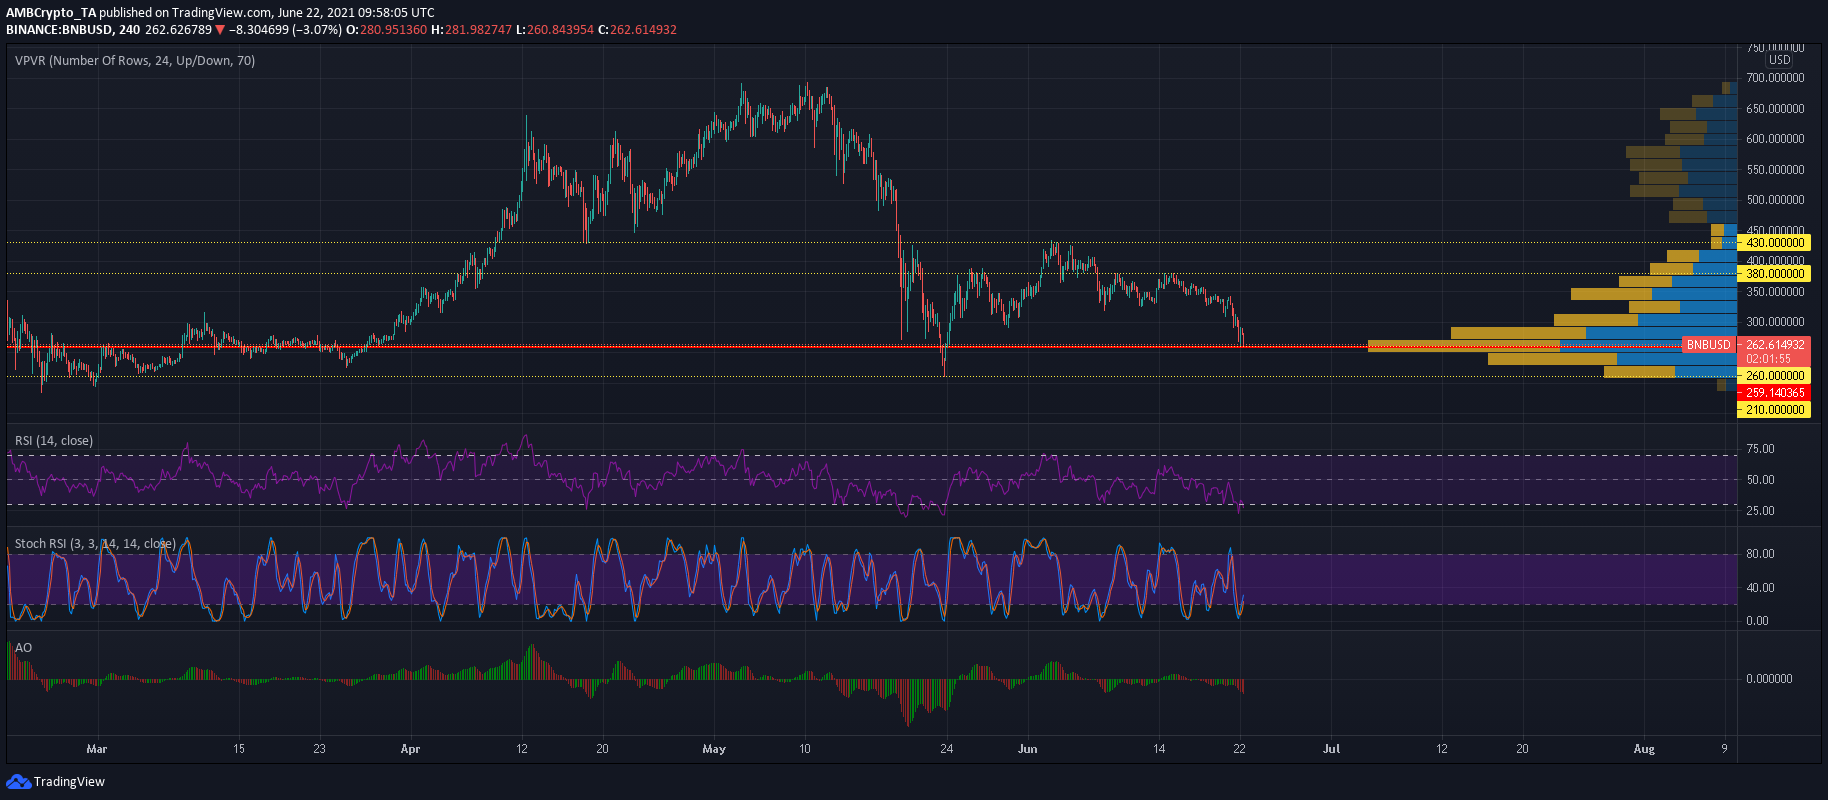 Binance Coin's recovery hinged on this